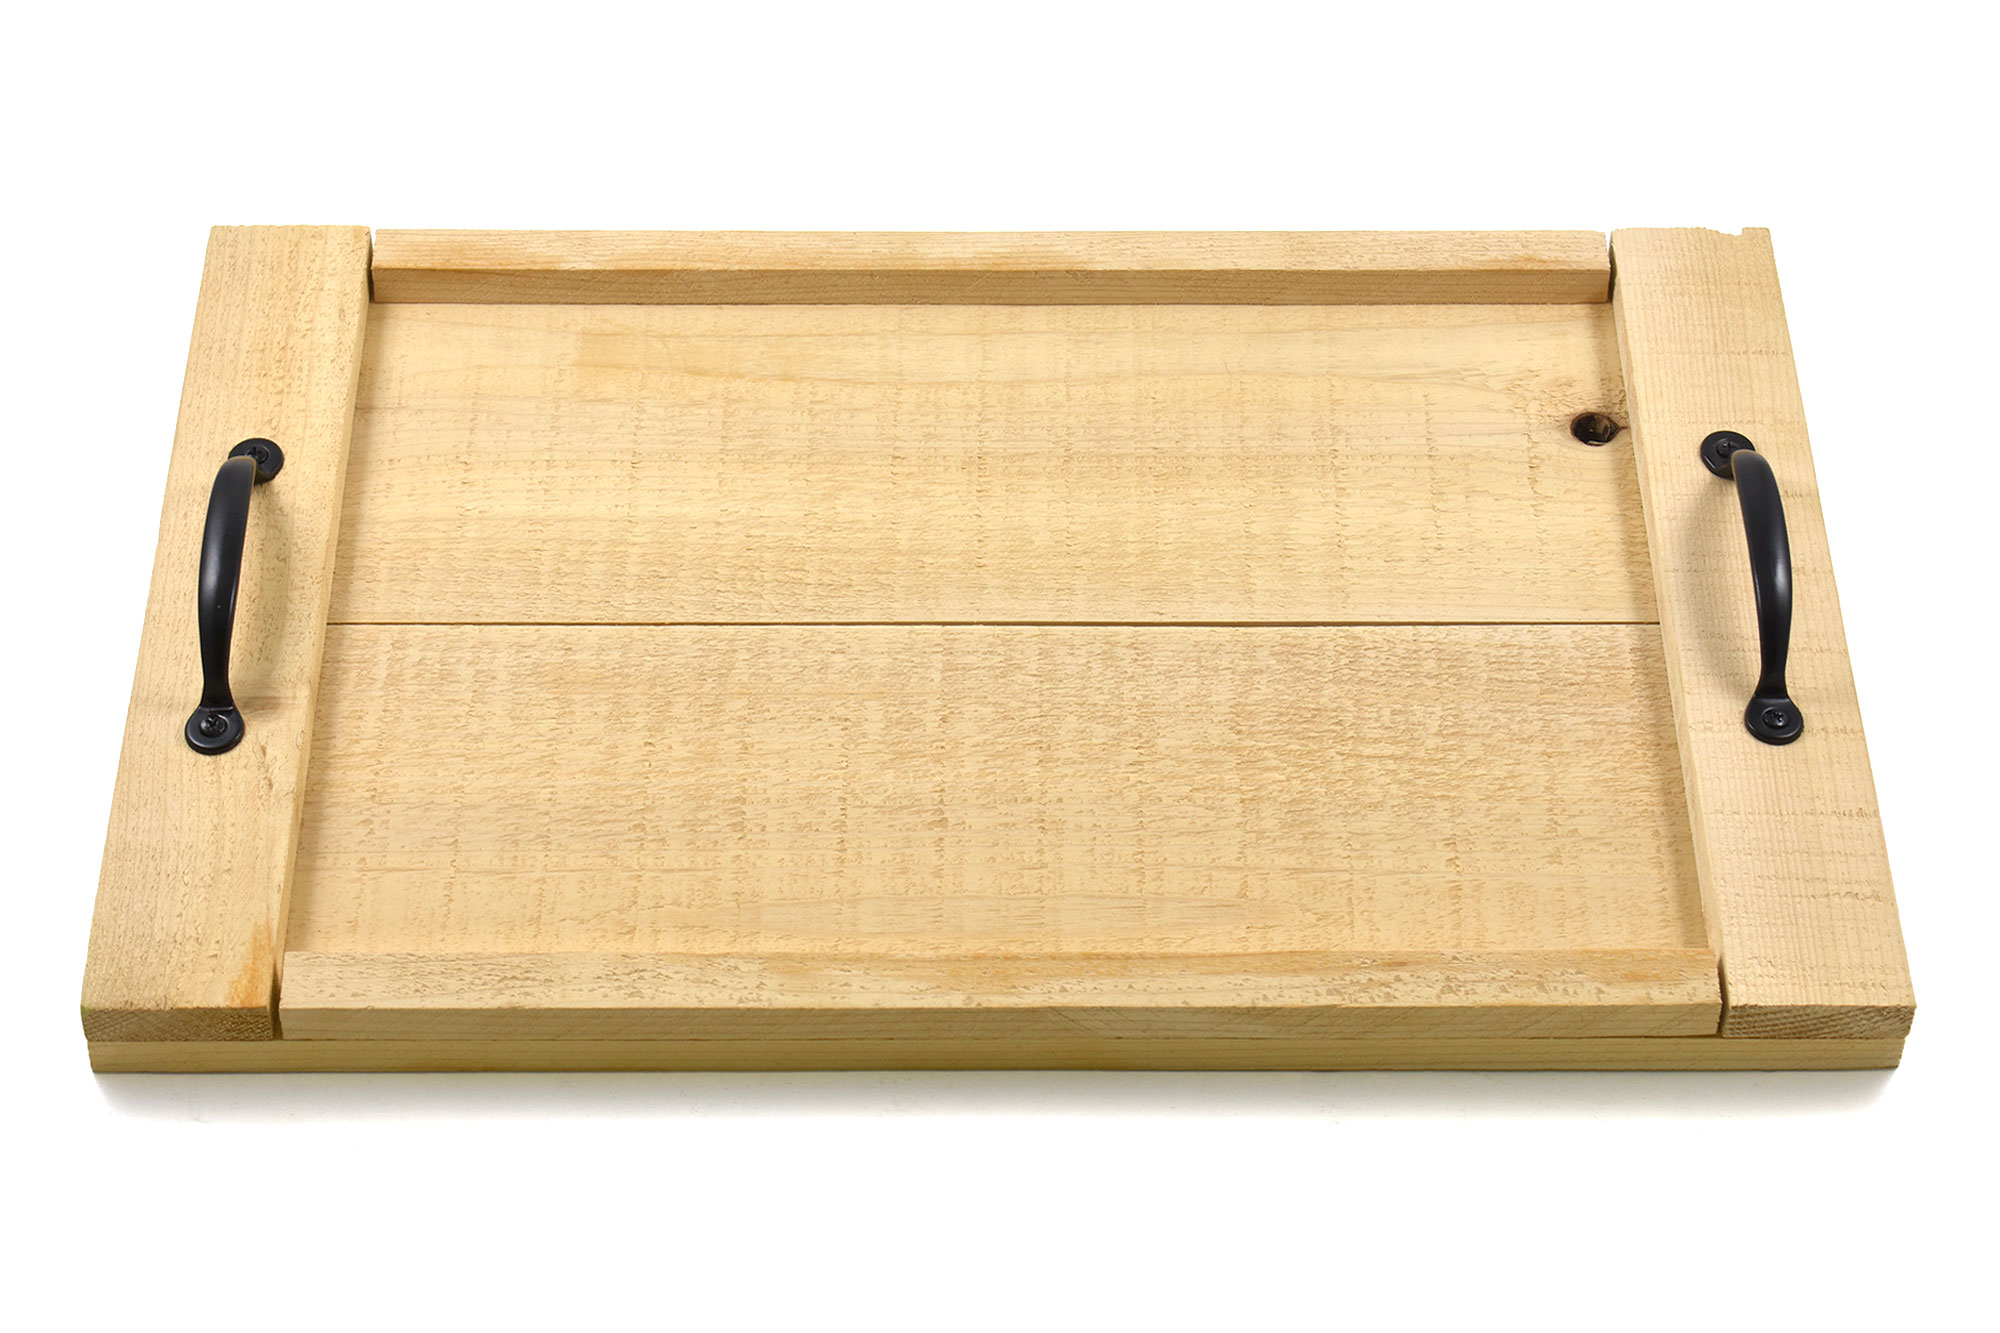 Rustic cedar wood serving tray